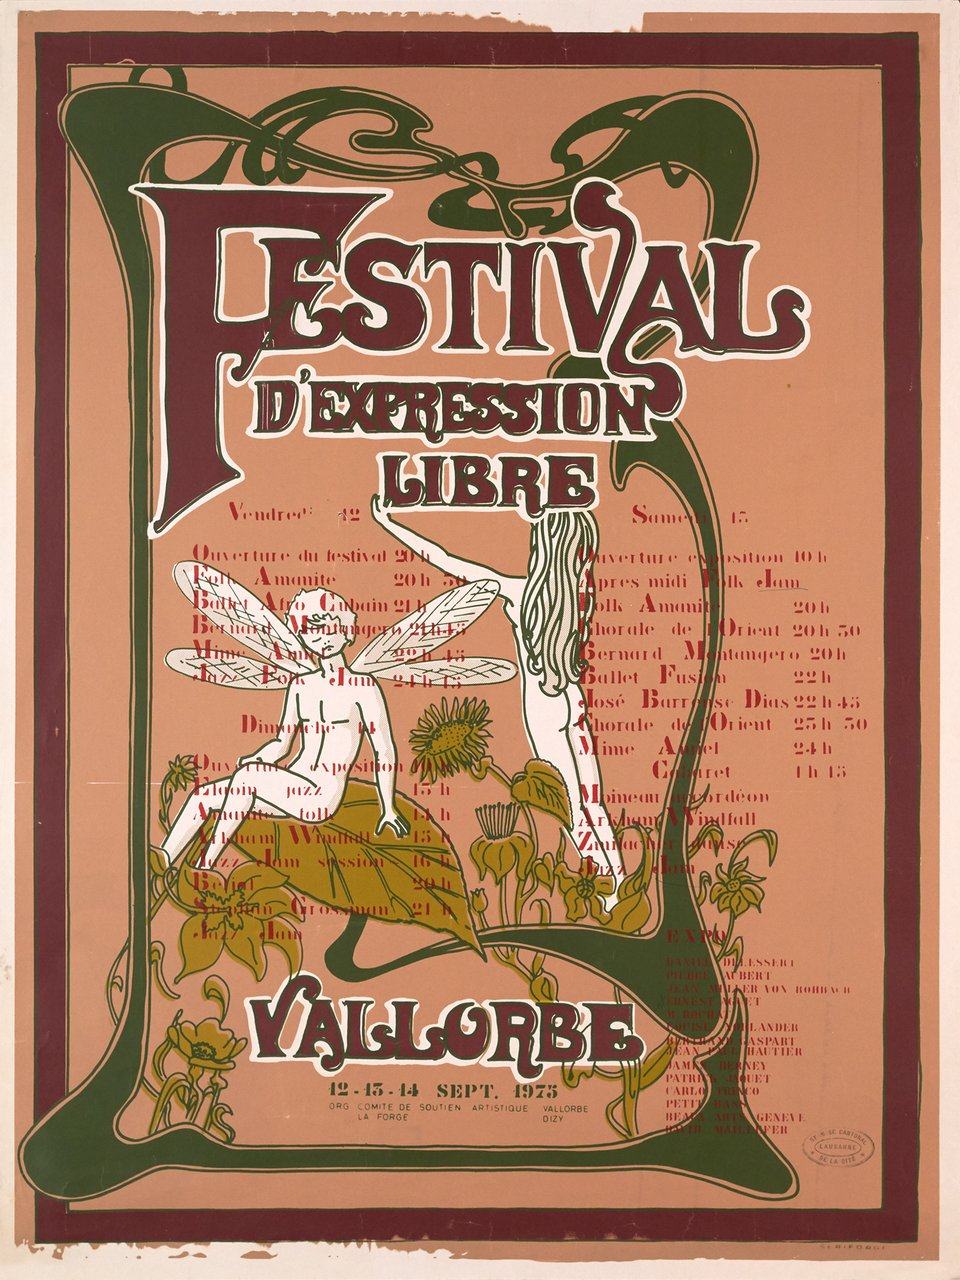 Vallorbe, Festival d'expression libre – Vintage poster –  ANONYME – 1975